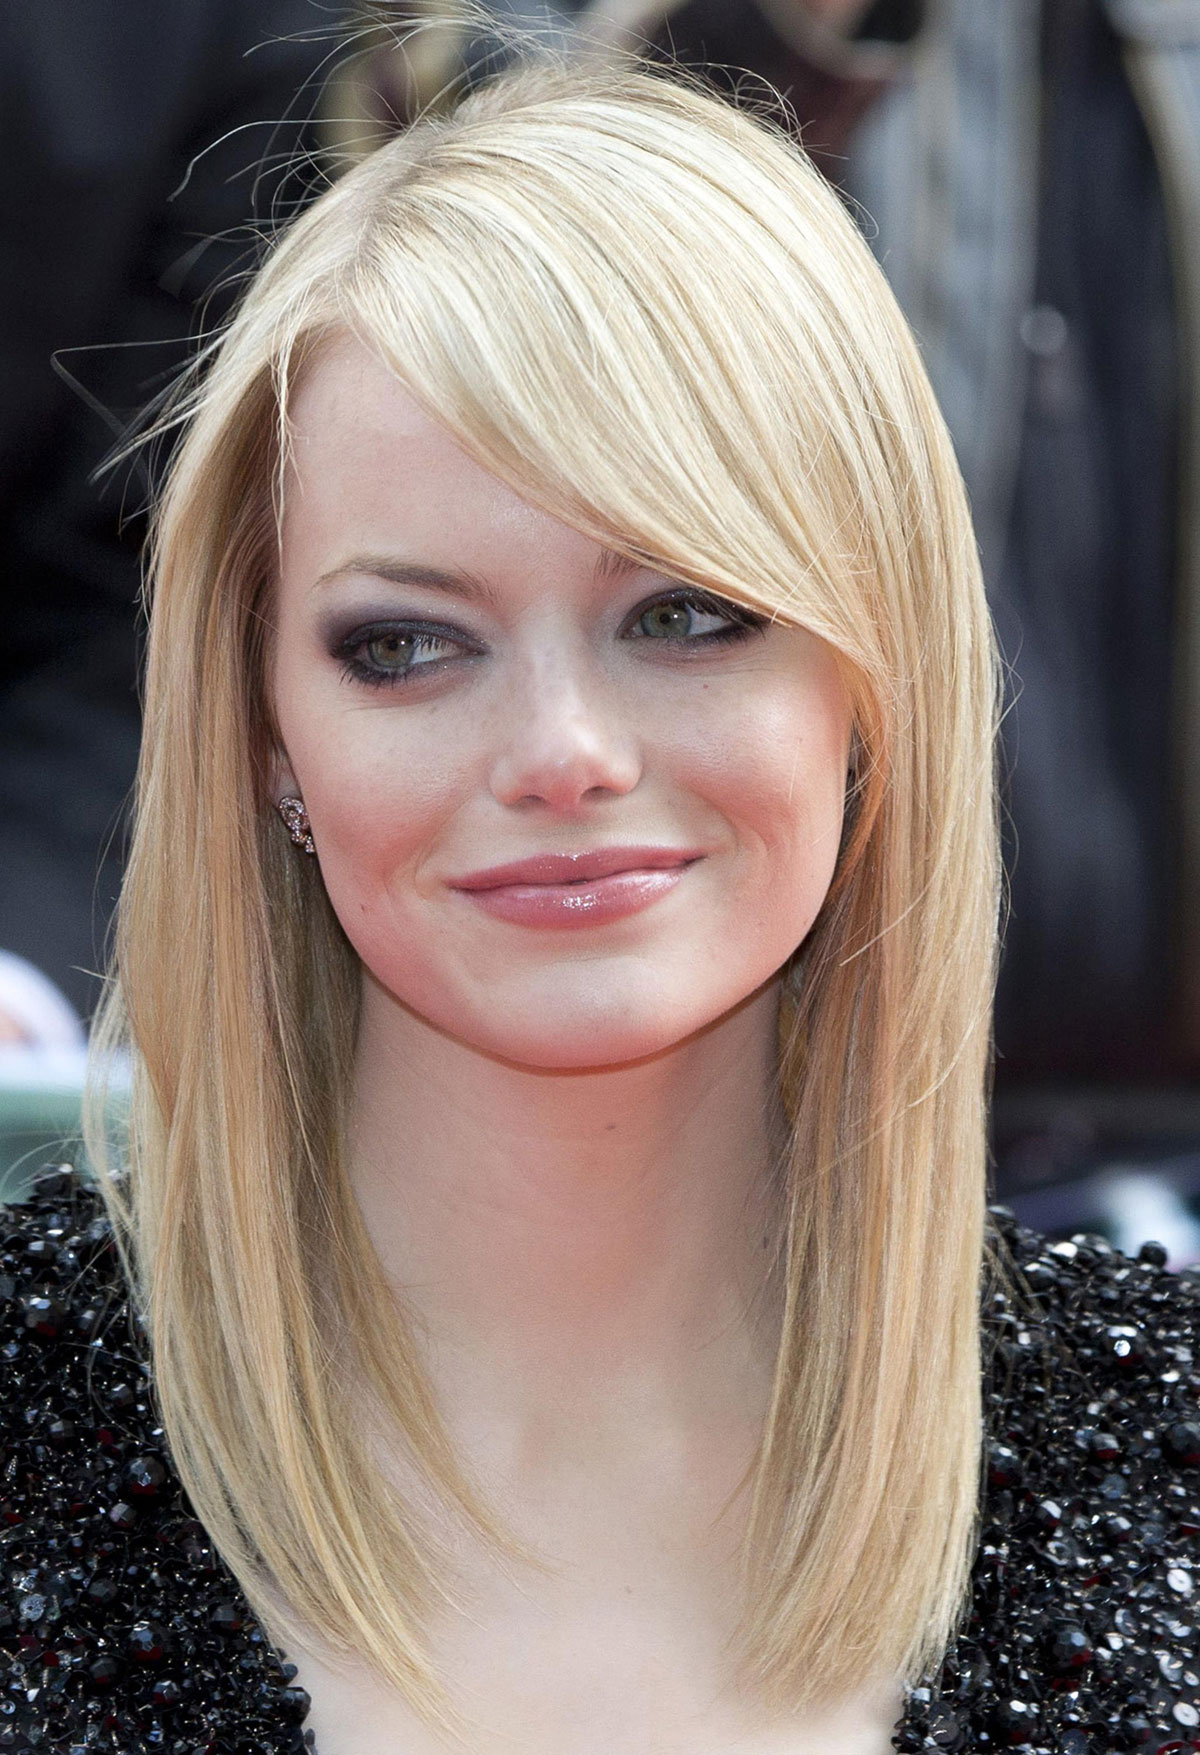 Emma Stone At The Amazing Spider Man Premiere In London Hawtcelebs